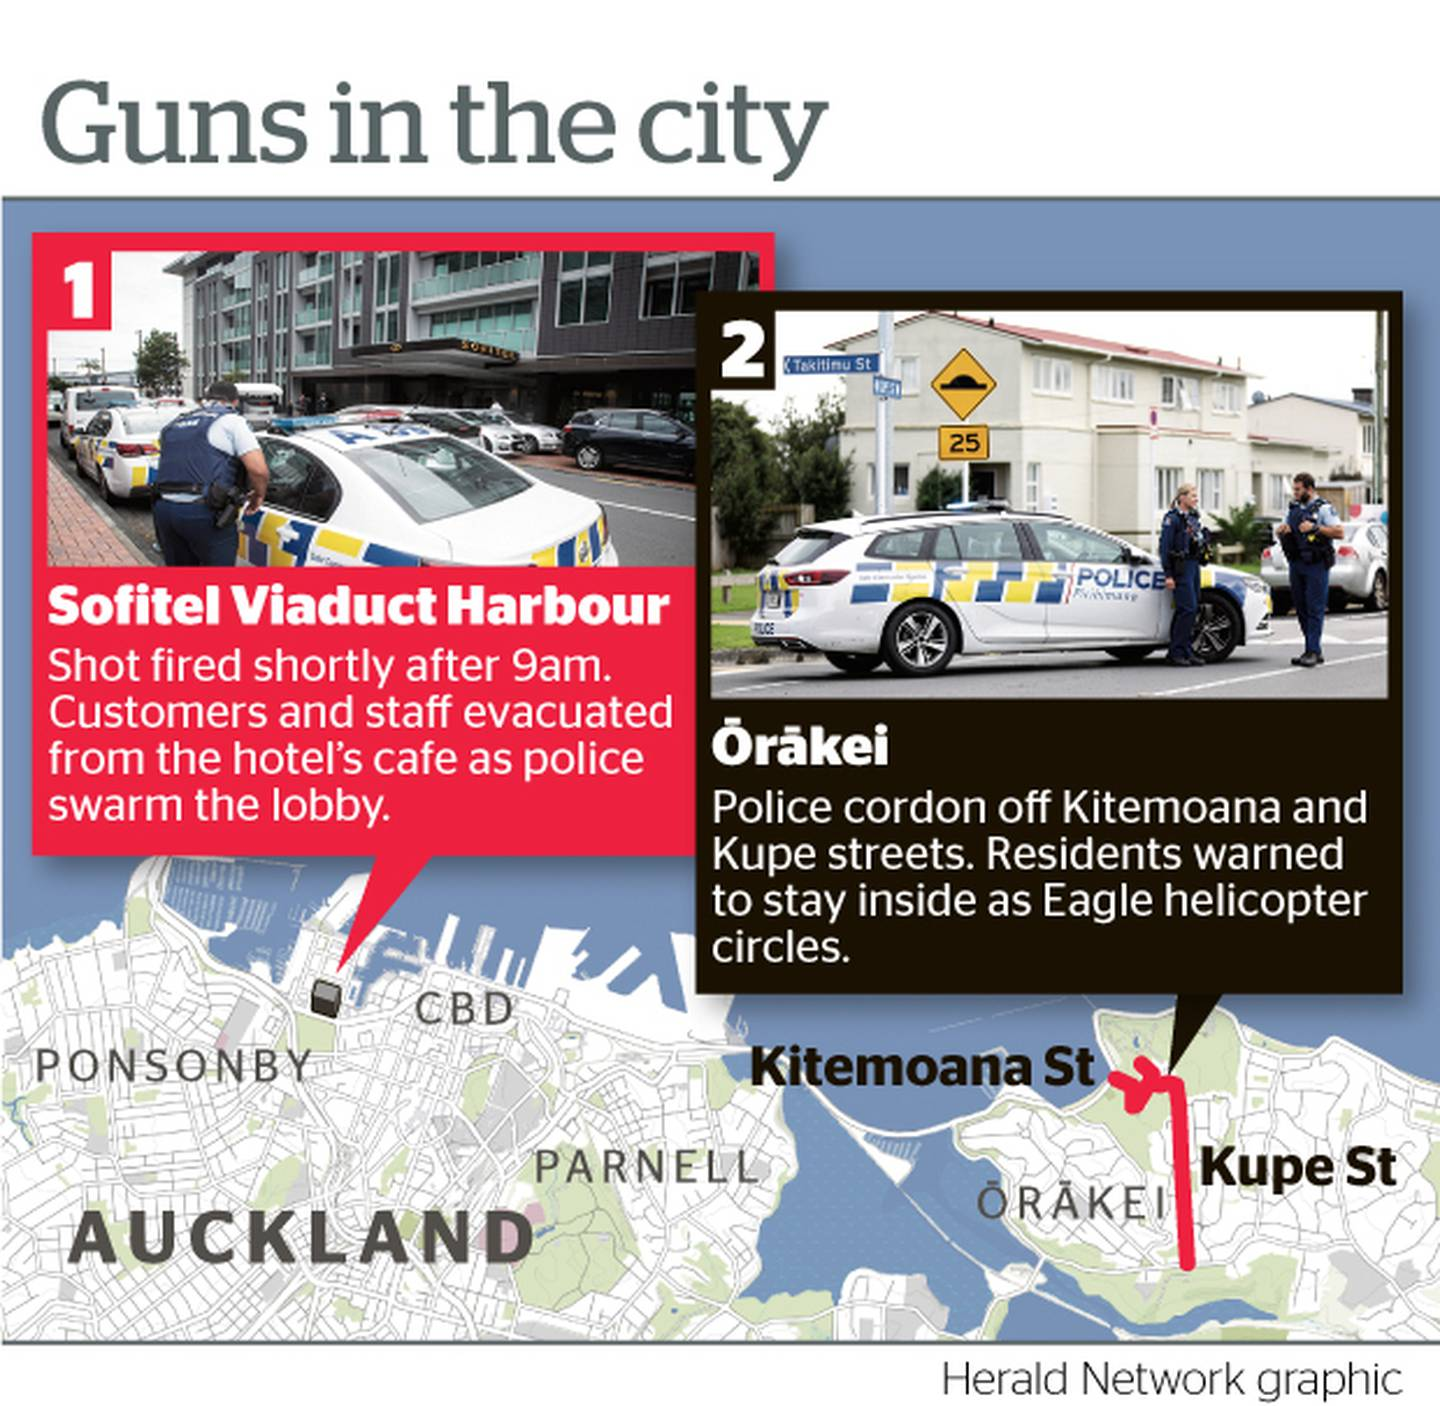 Guns in the city